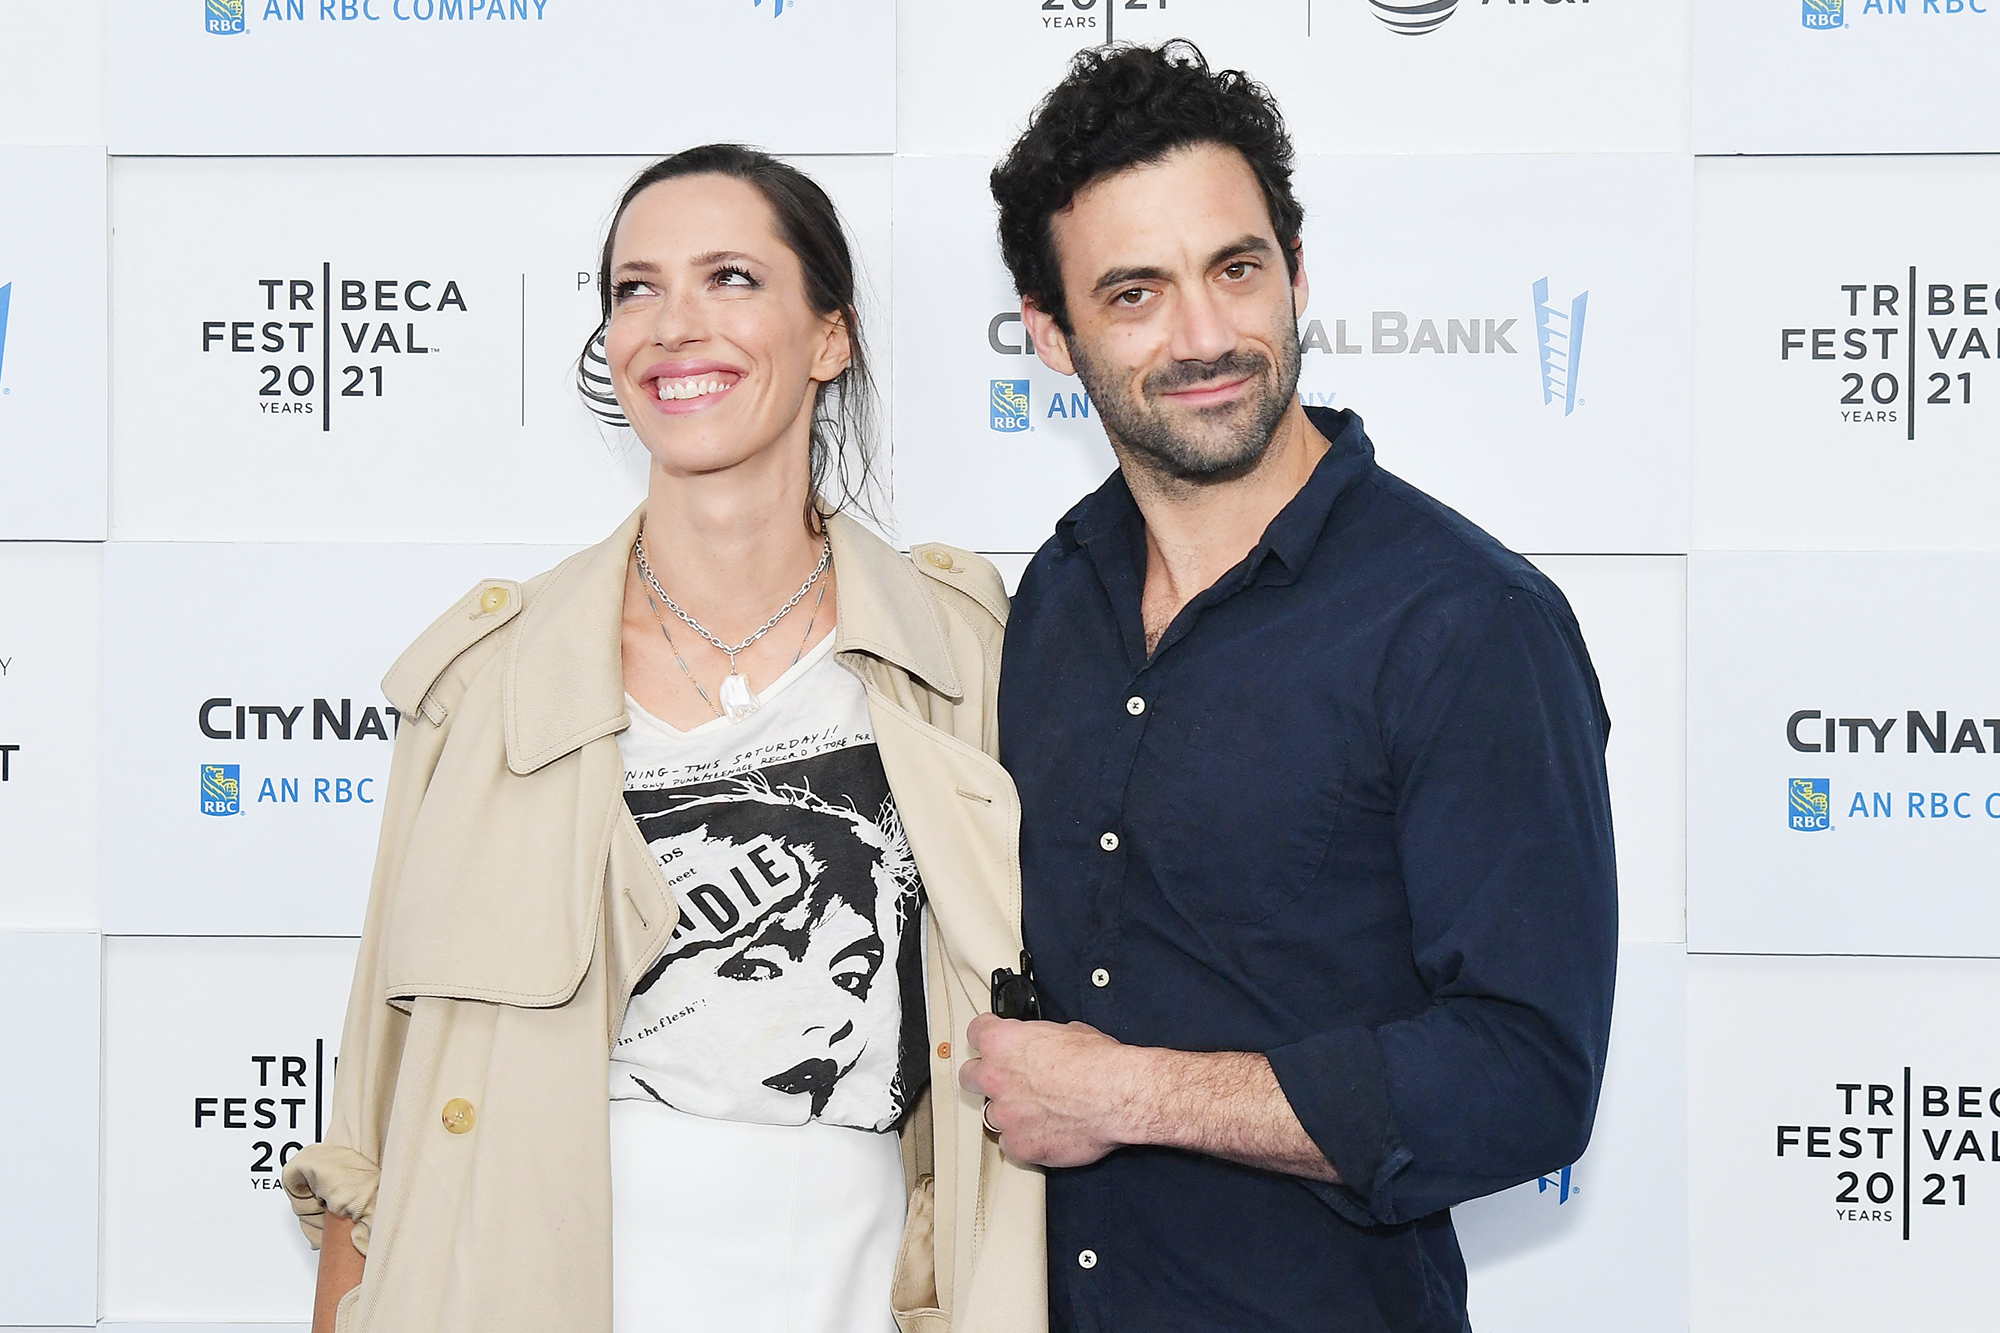 """Englist actress Rebecca Hall and her husband actor Morgan Spector attend the """"Blondie: Vivir En La Habana"""" premiere during the 2021 Tribeca Festival at Battery Park on June 16, 2021 in New York City."""